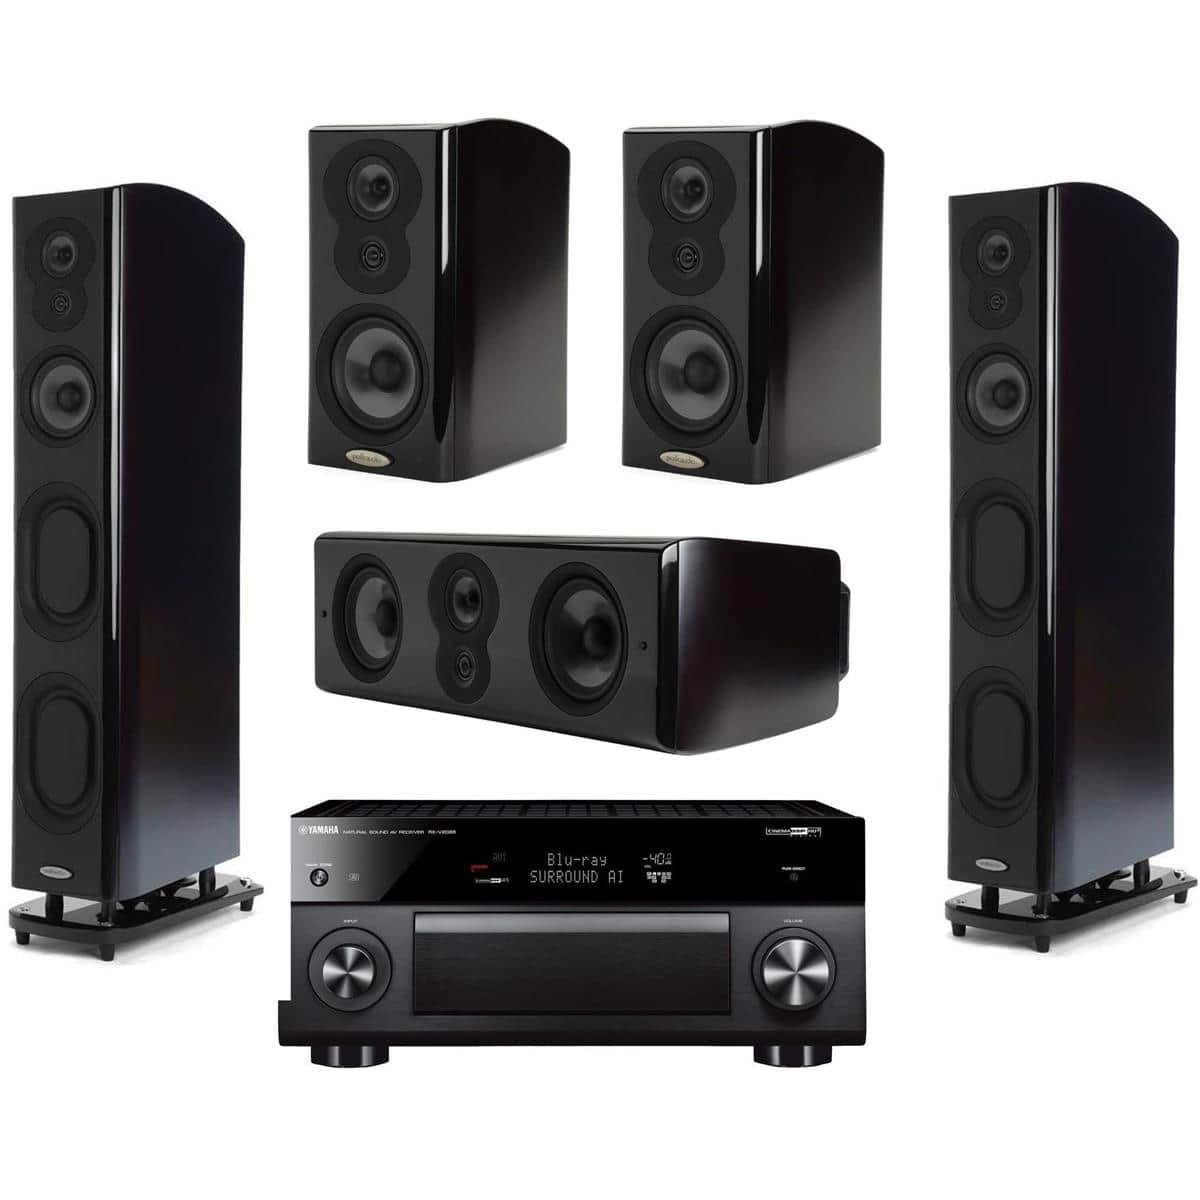 Polk LSI Speakers: 2x M707 + 2x M703 + LSi M706c + Yamaha RX-V2085BL Receiver $2999 + Free Shipping